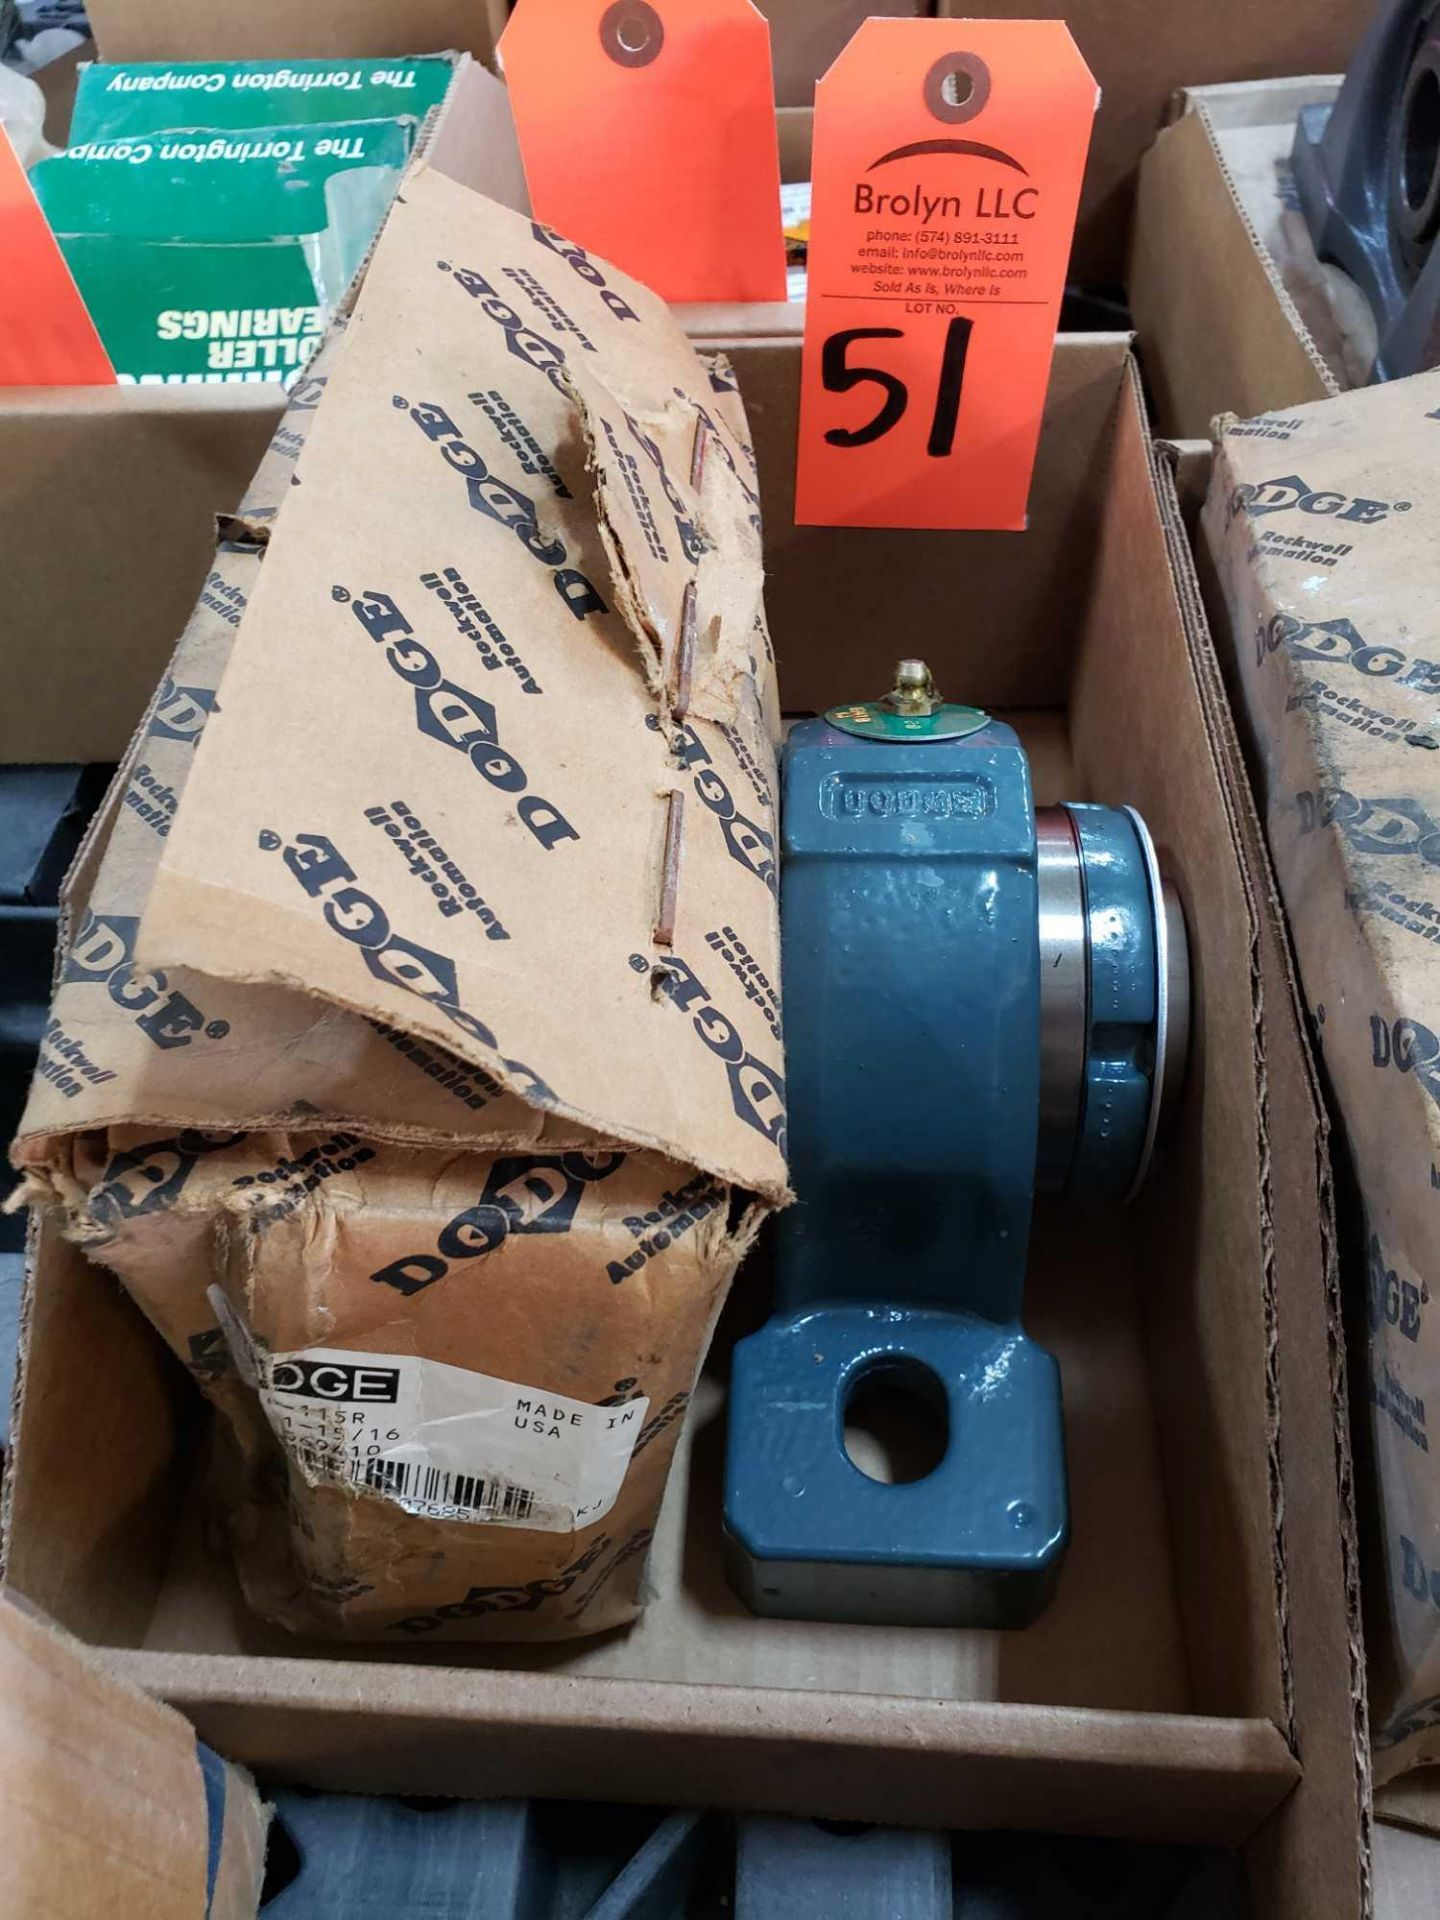 Lot 51 - Dodge bearing part number P2B-IP-115R. New in box.